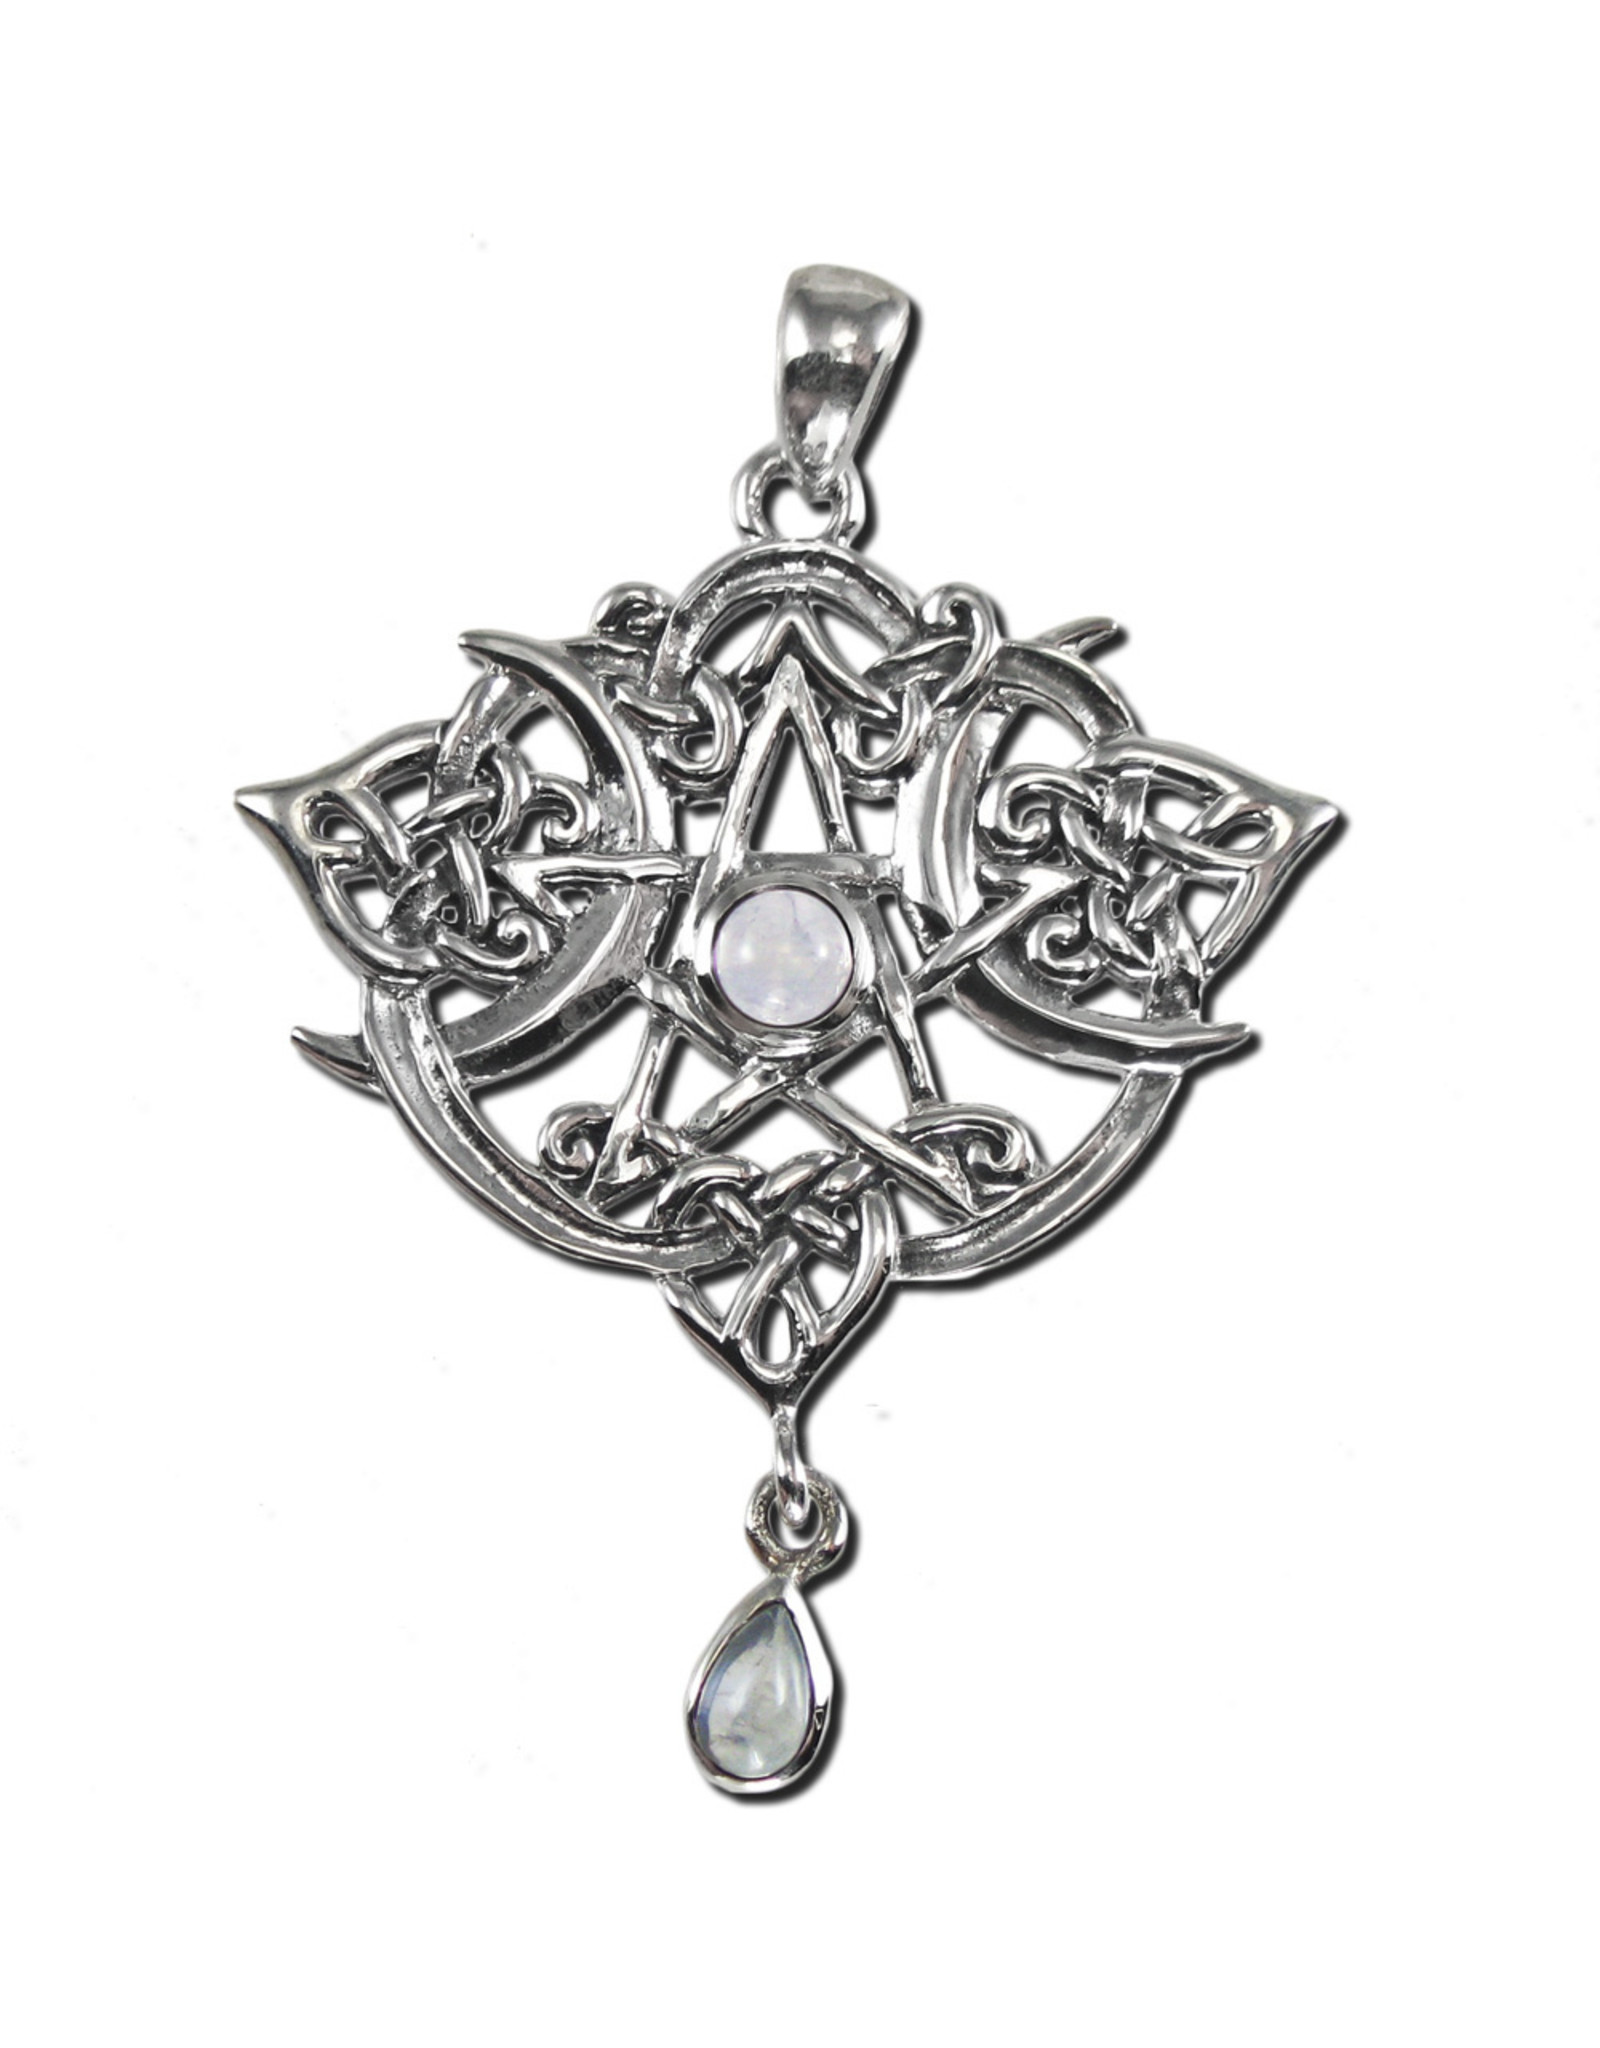 Heart Pentacle Pendant in Sterling Silver with Moonstone